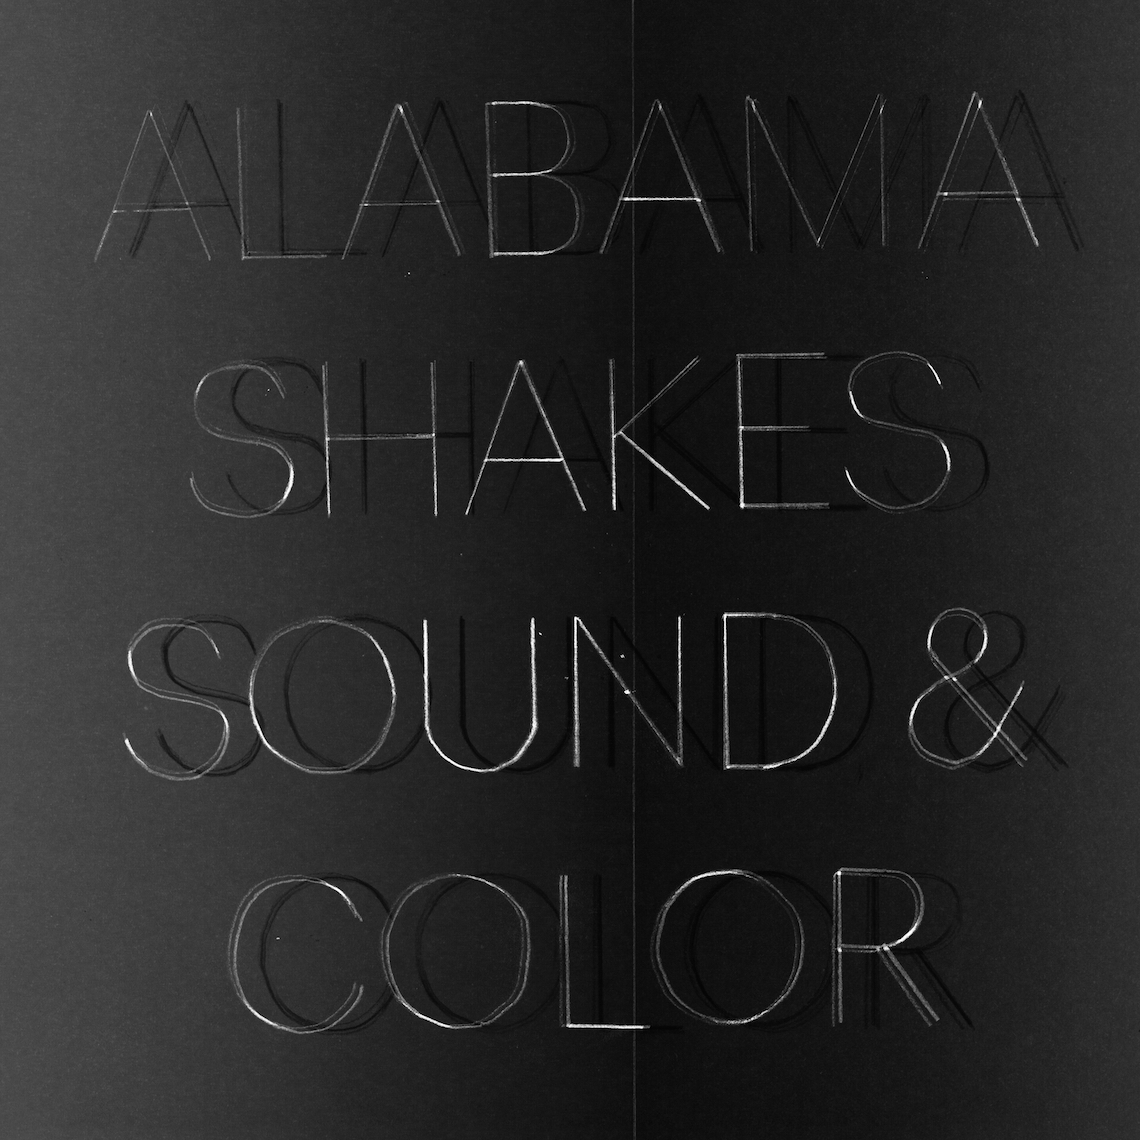 Guess Who - Alabama Shakes [Sound & Color]